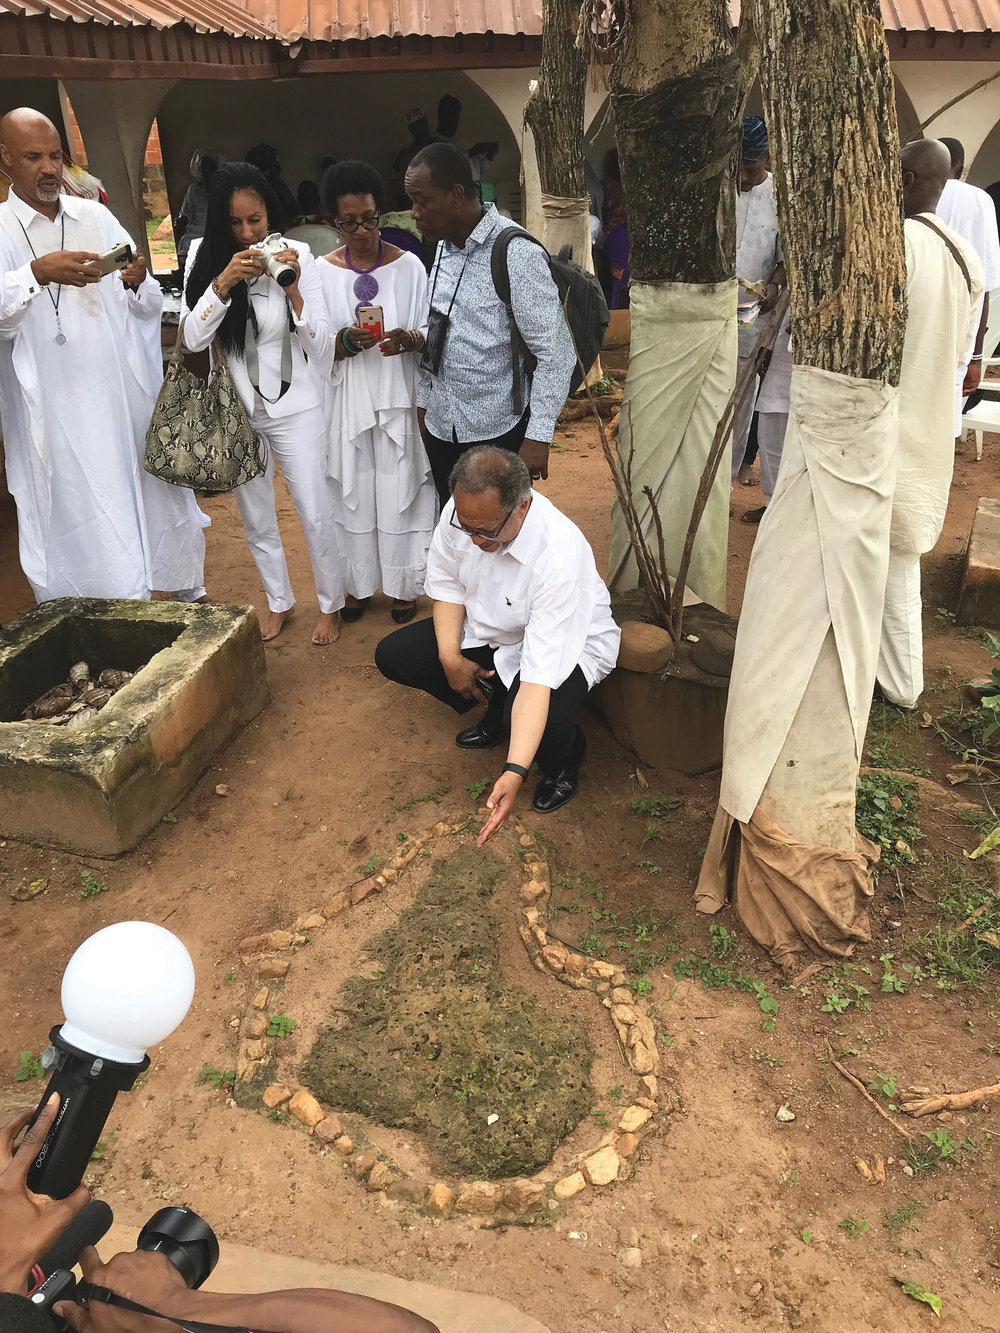 Pilgrimage to the Ancient City of Ile-Ife pic 3.jpg